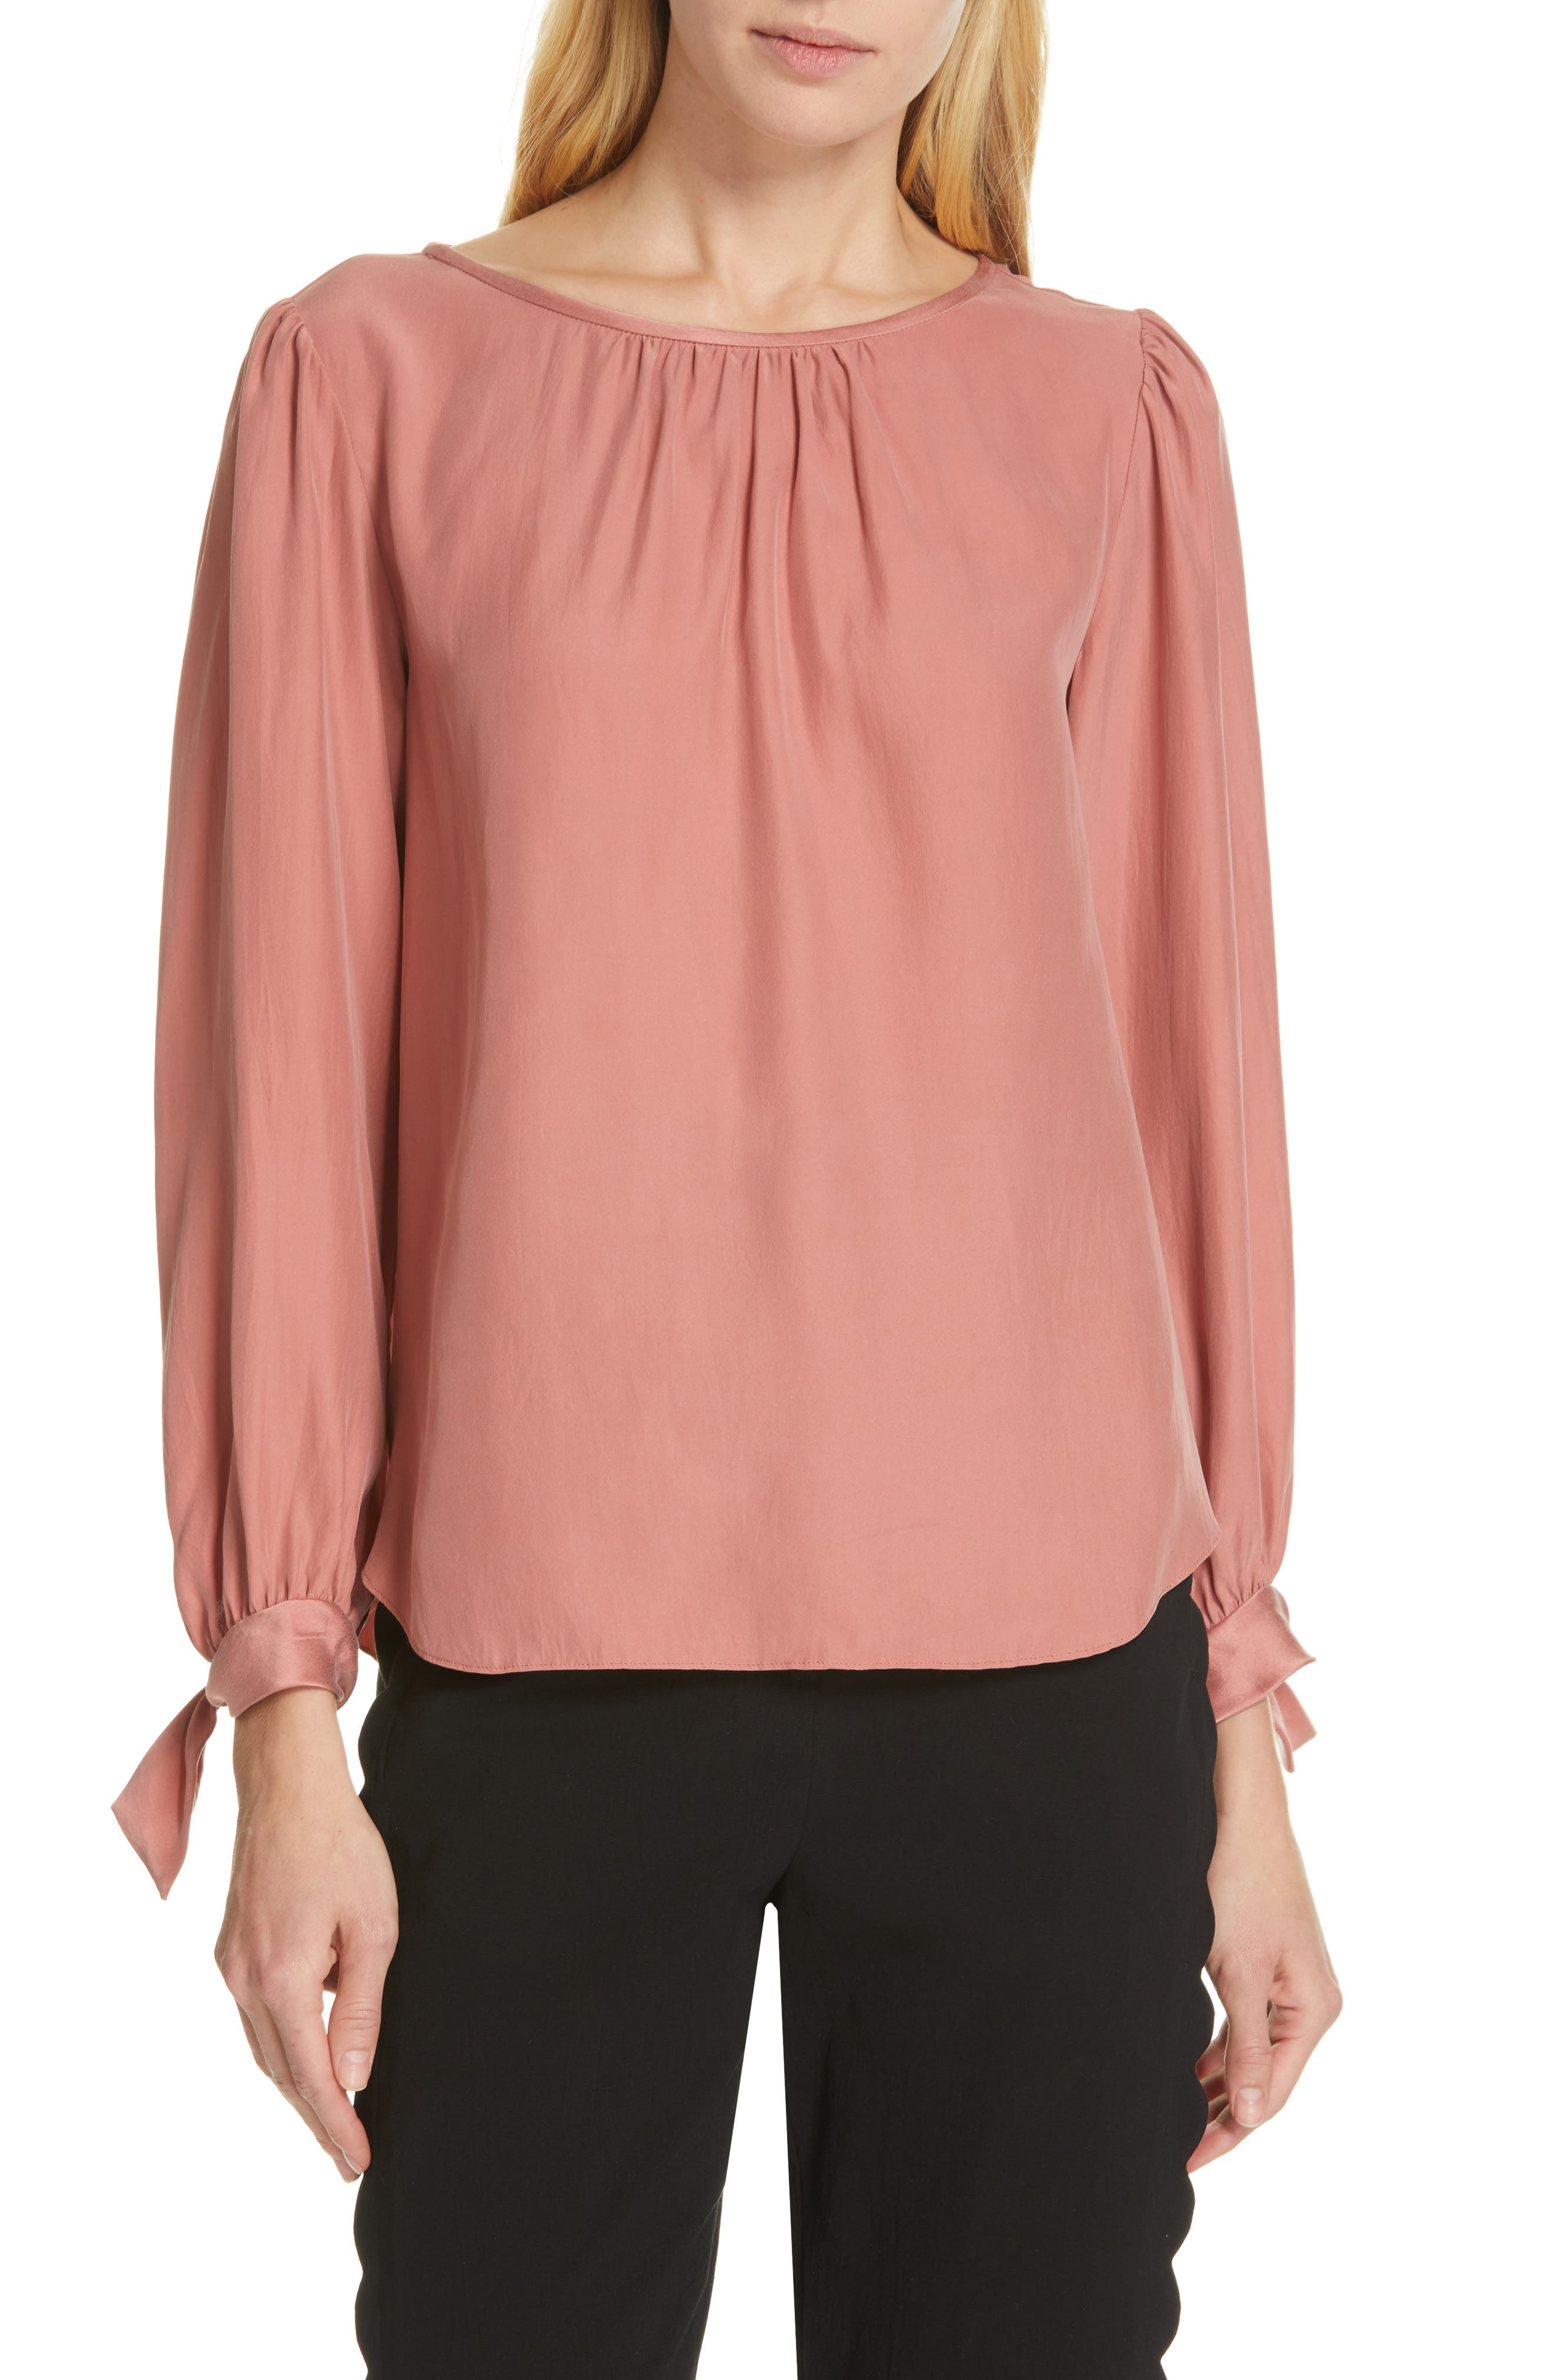 TAILORED BY REBECCA TAYLOR Sleeve Tie Silk Charmeuse Top, Main, color, LIPGLOSS